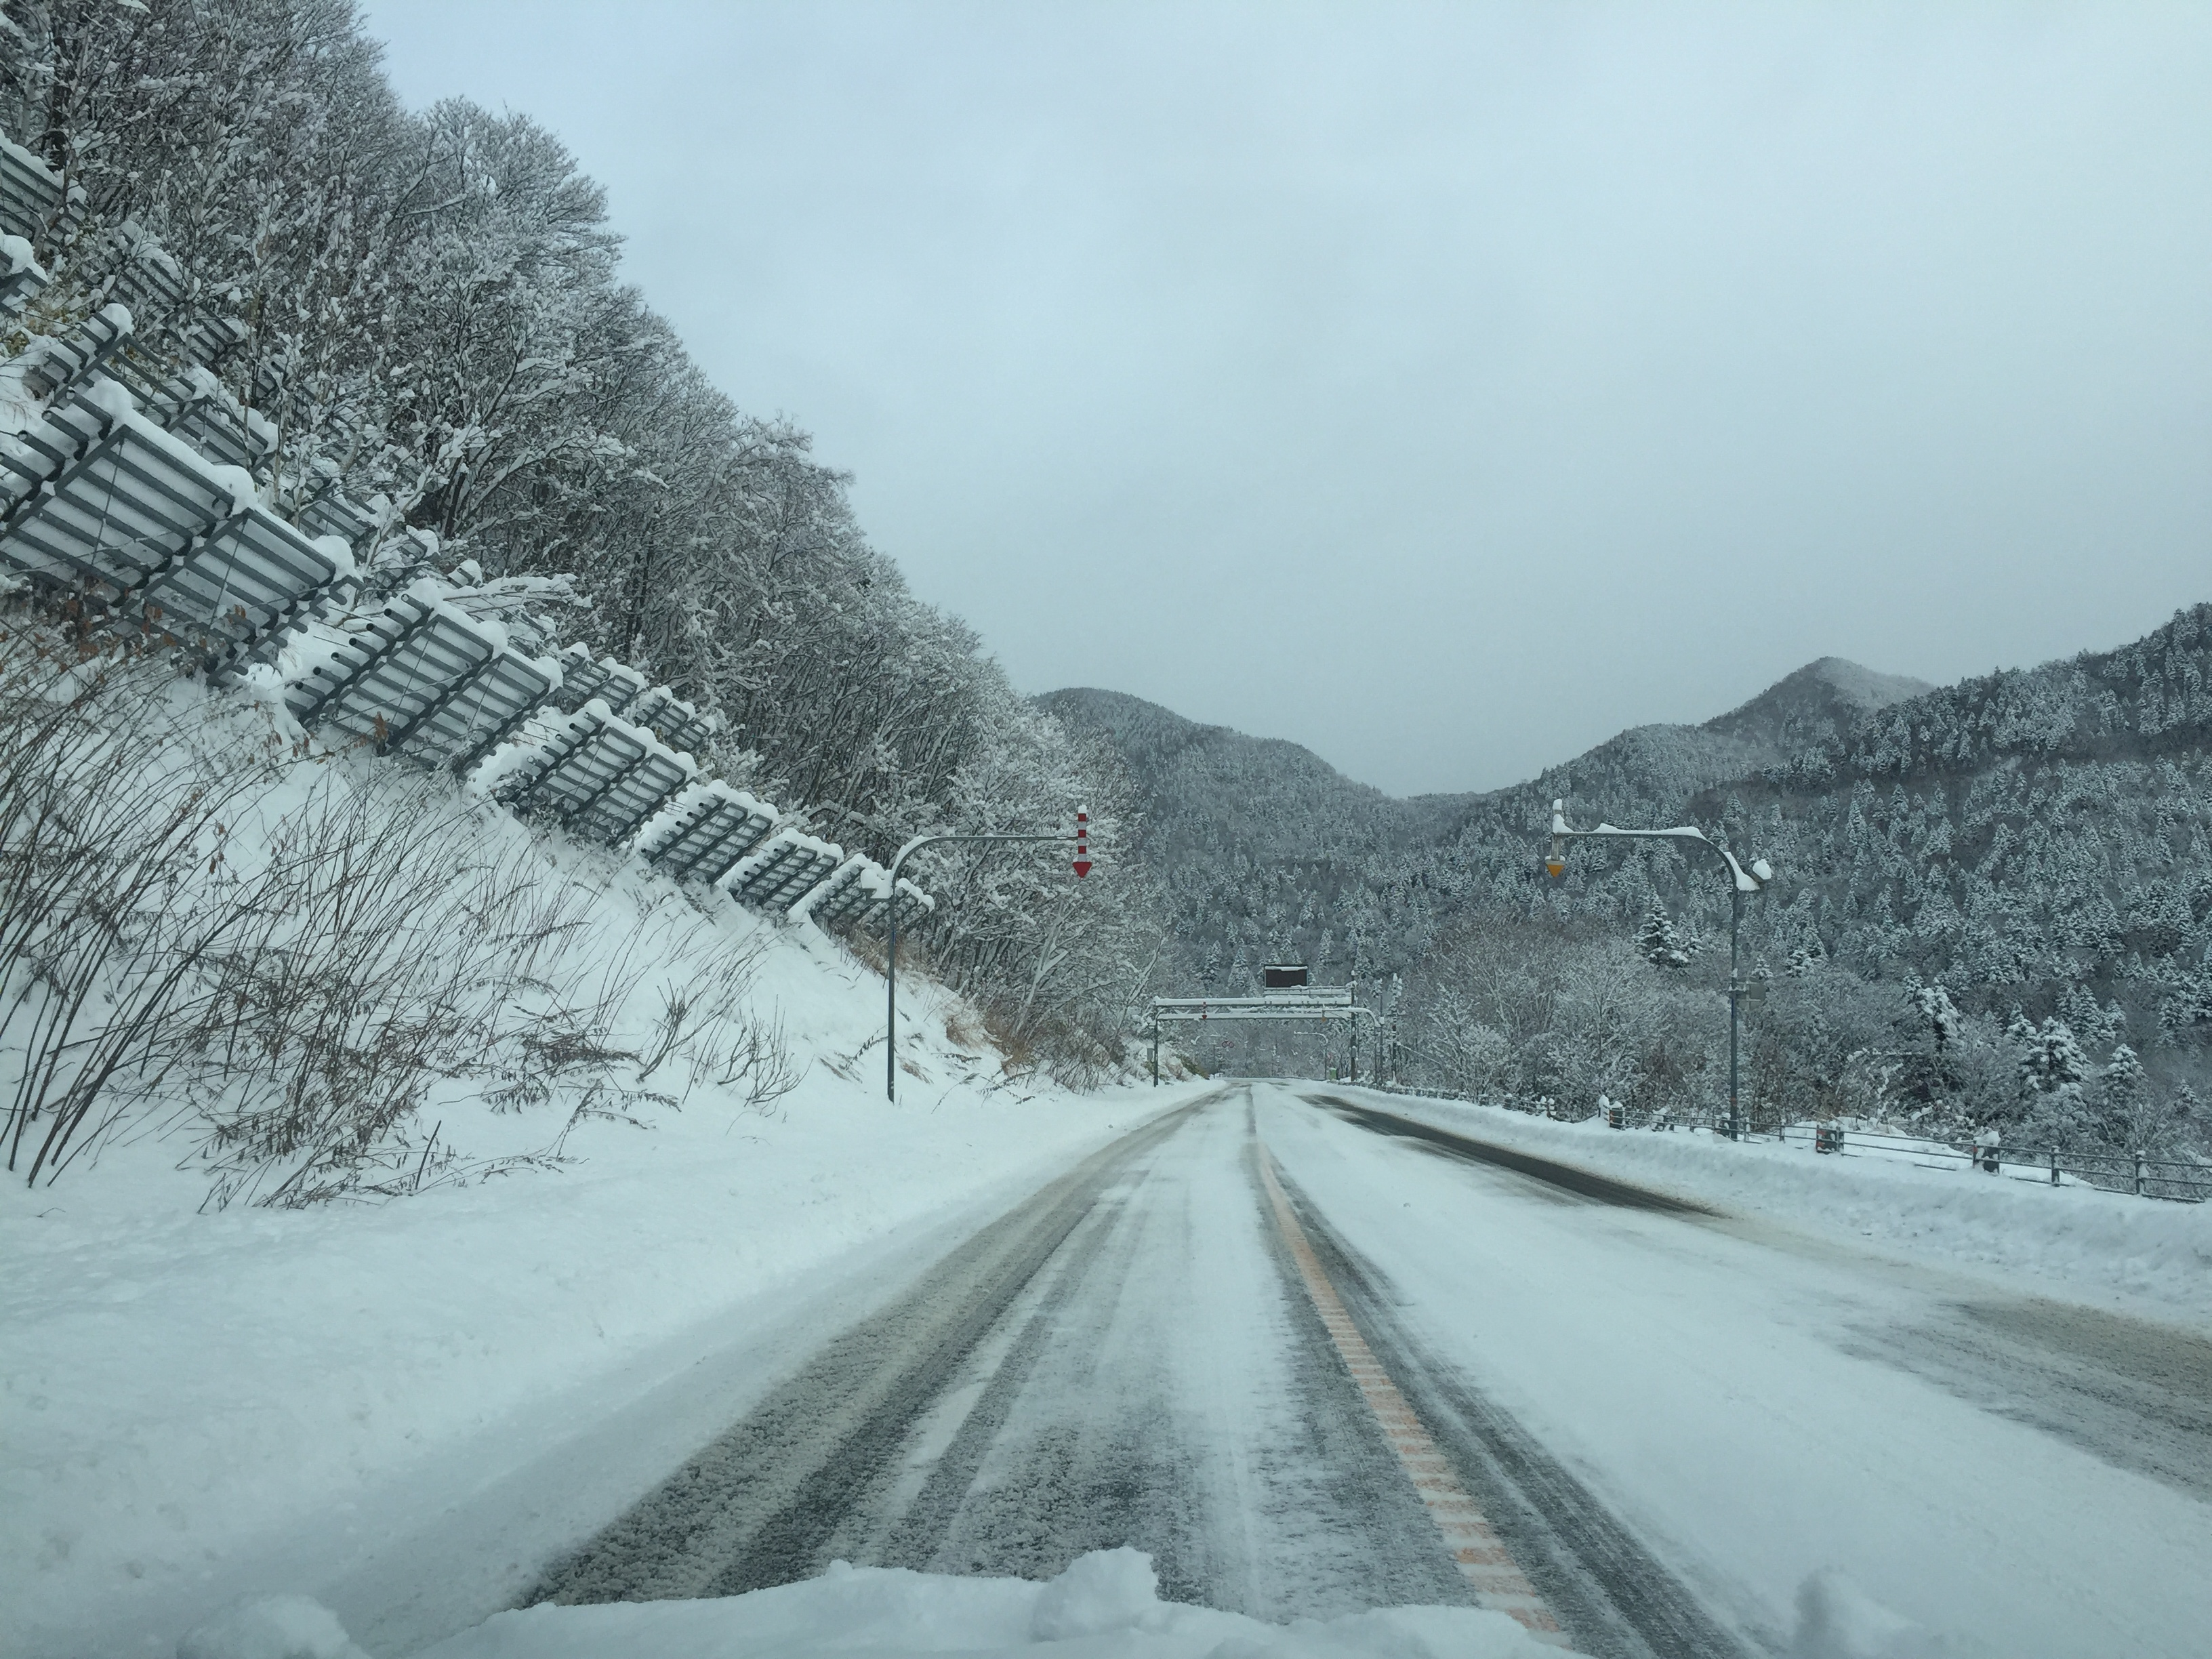 Winter Roads, 25 November 2015